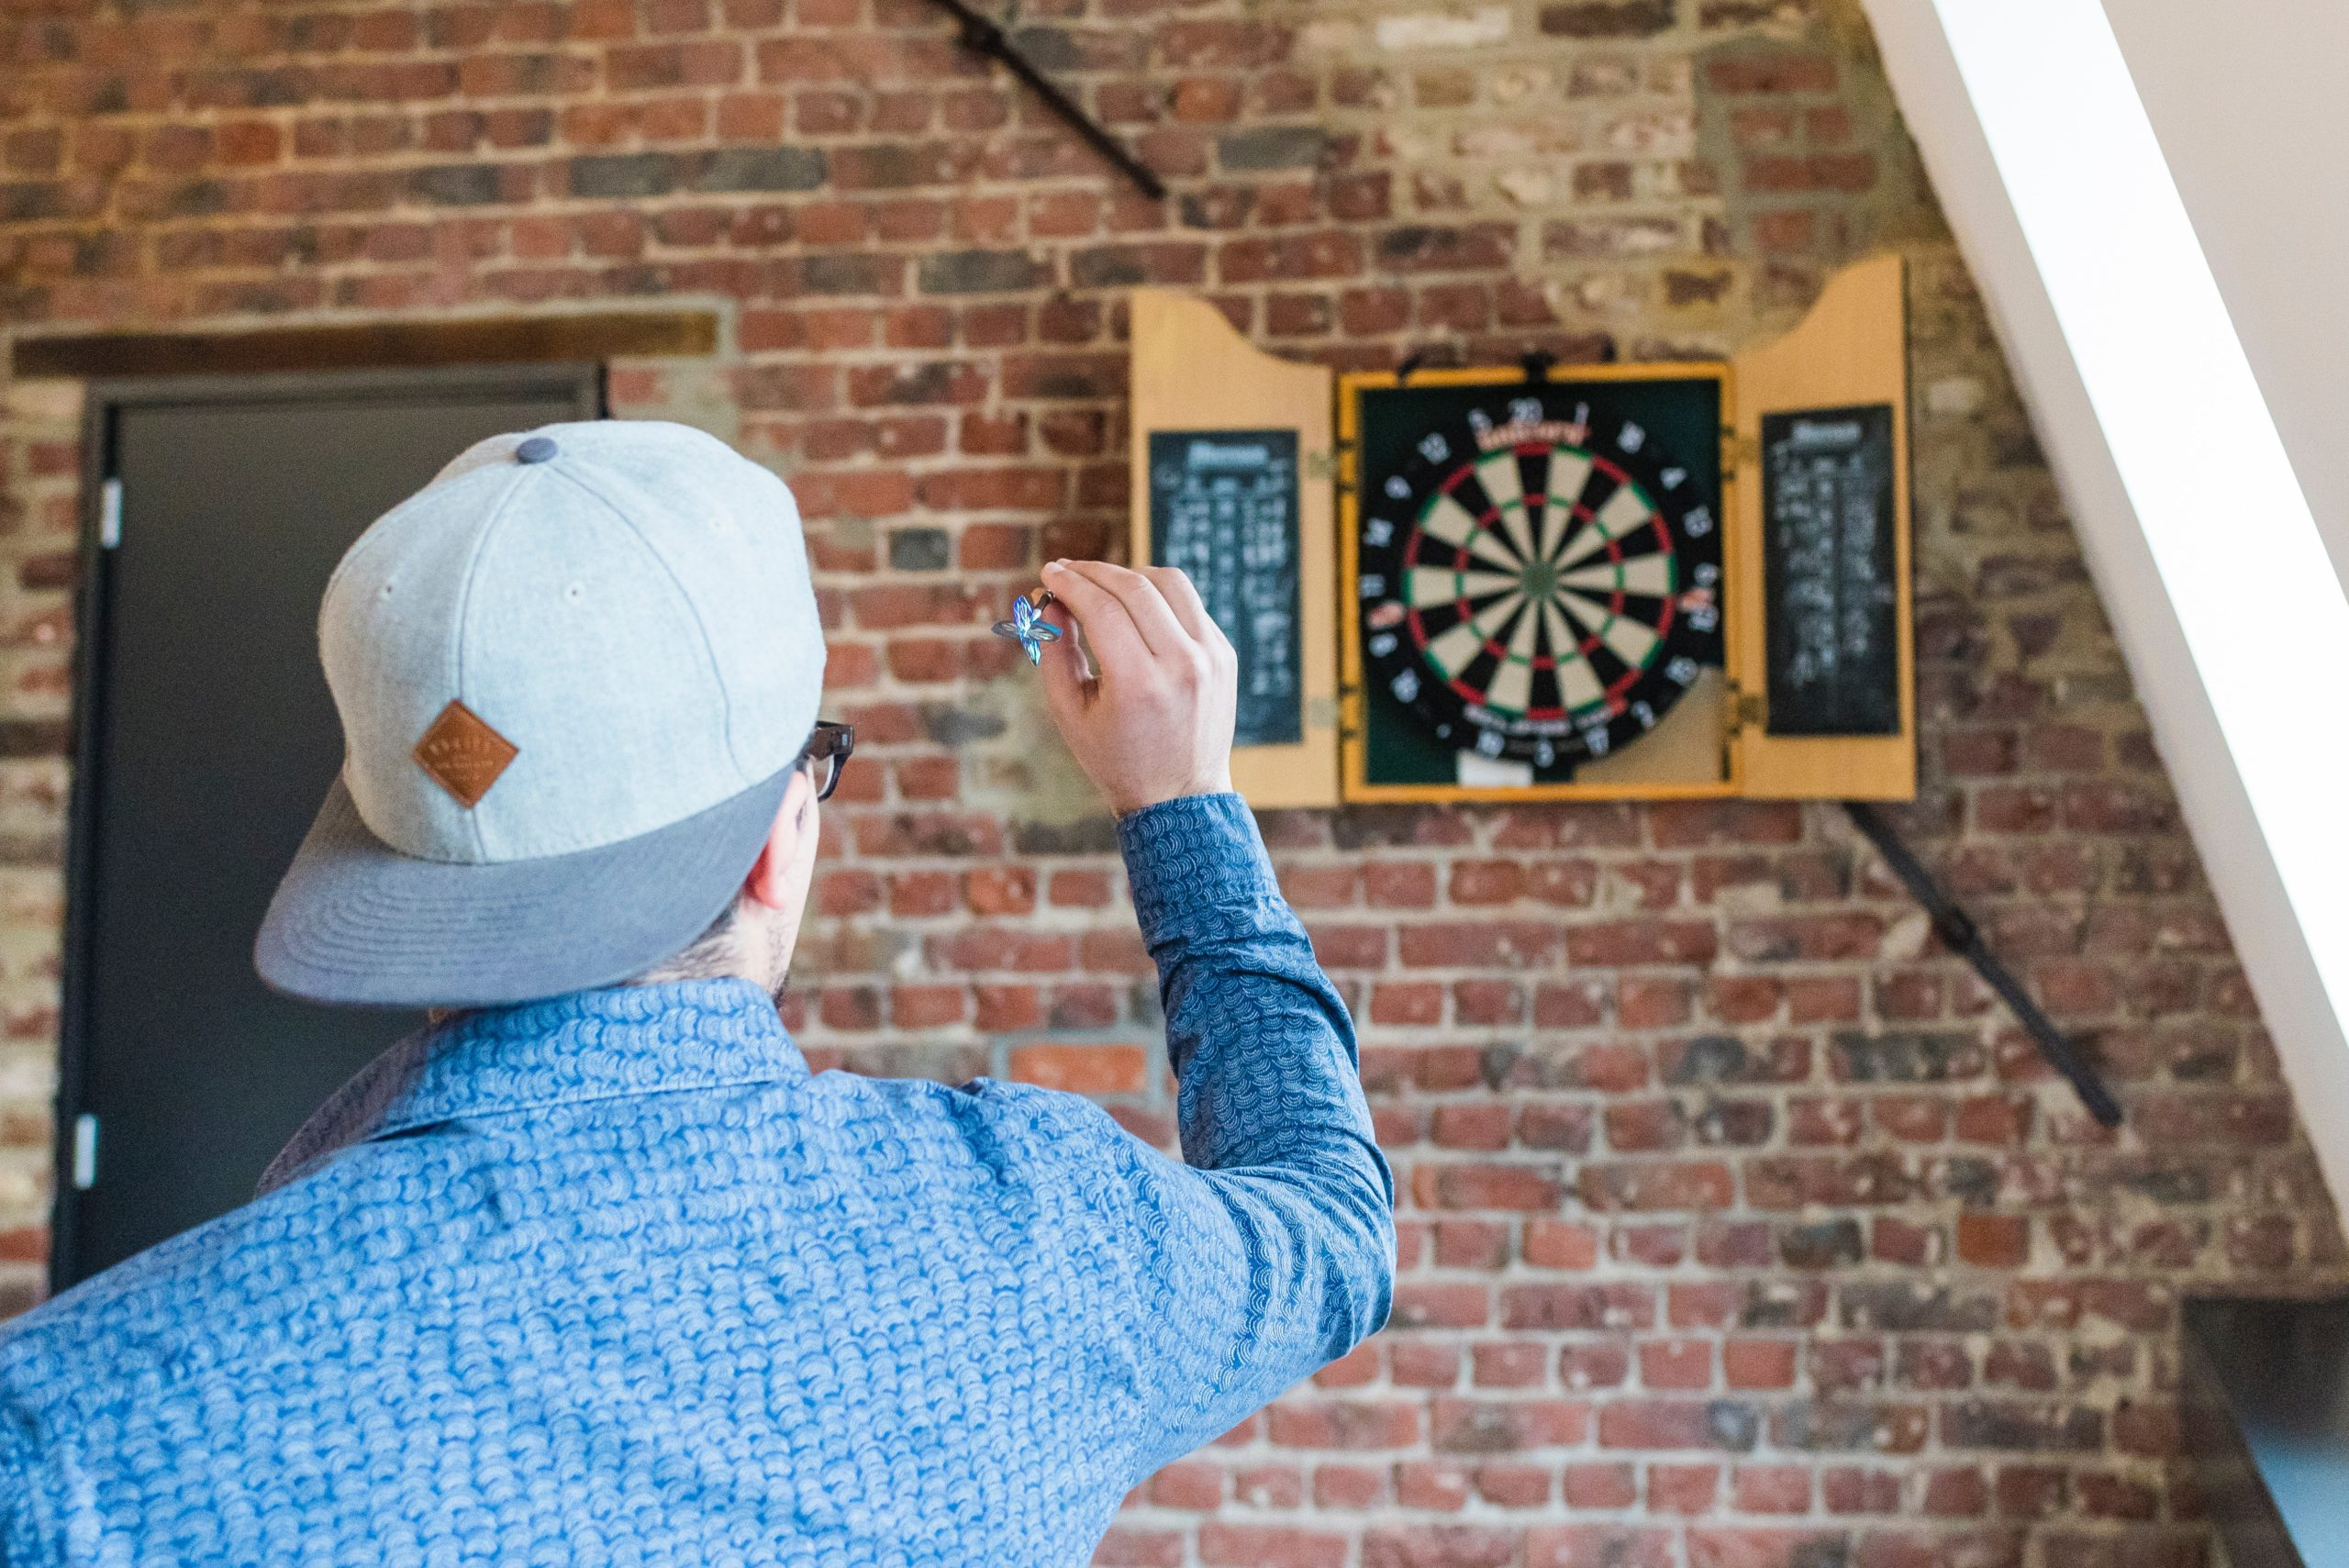 man with hat on backwards and a blue shirt tossing a dart at a dartboard on a brick wall